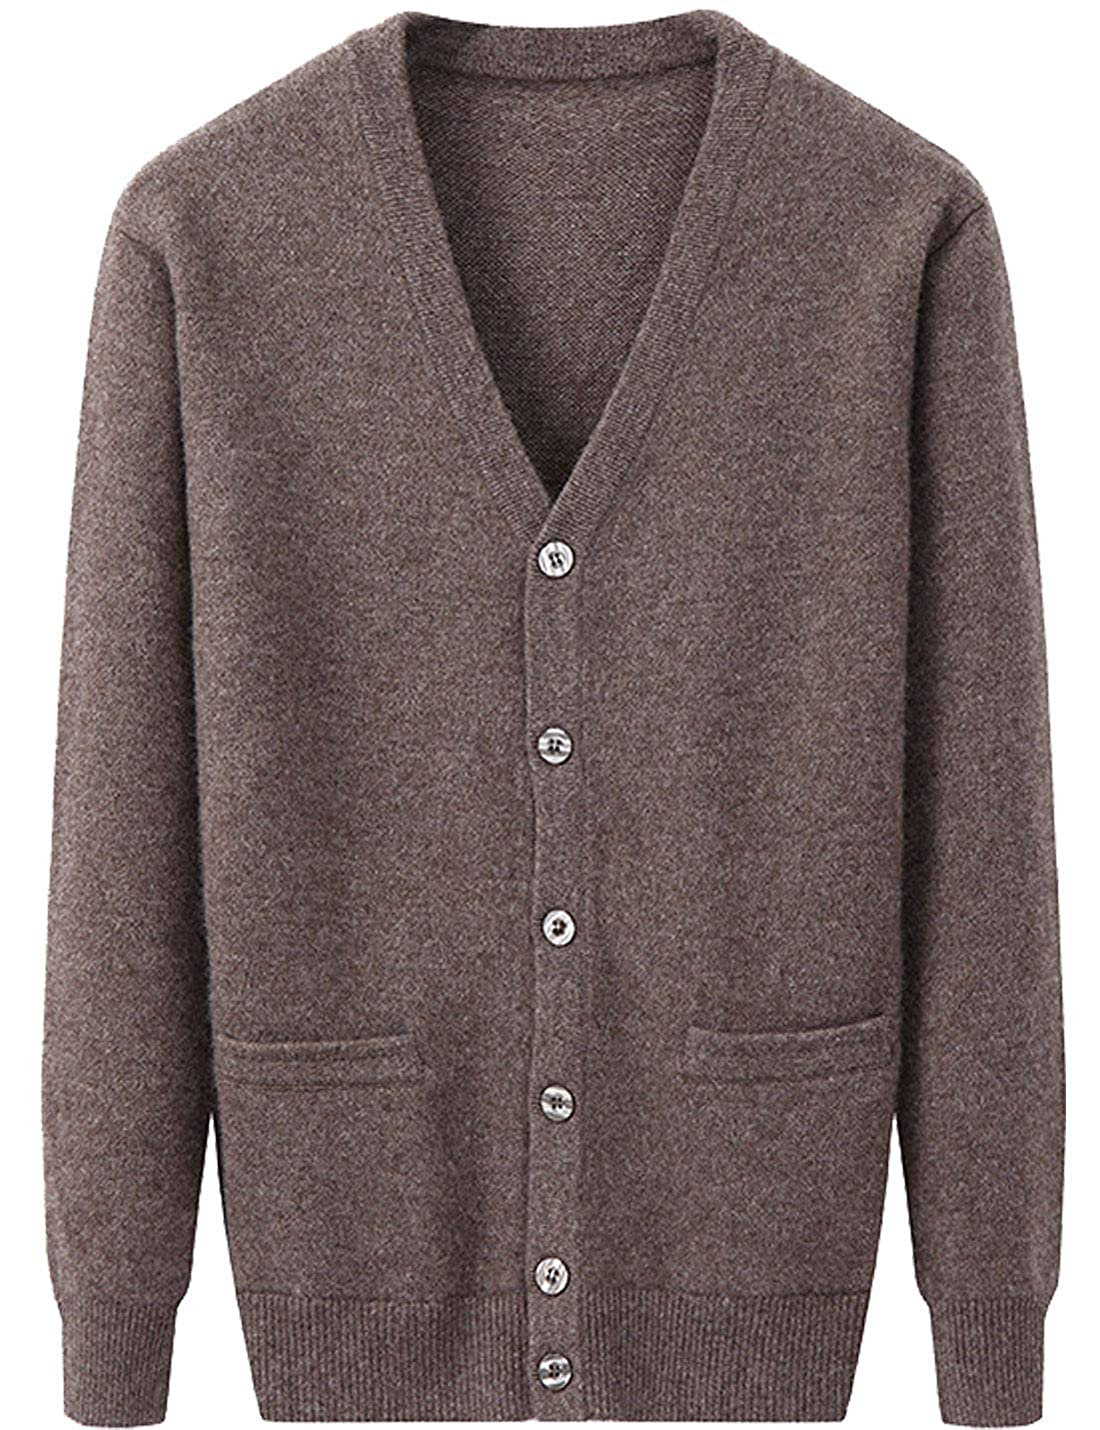 Flygo Mens V Neck 100/% Cashmere Cardigan Sweater